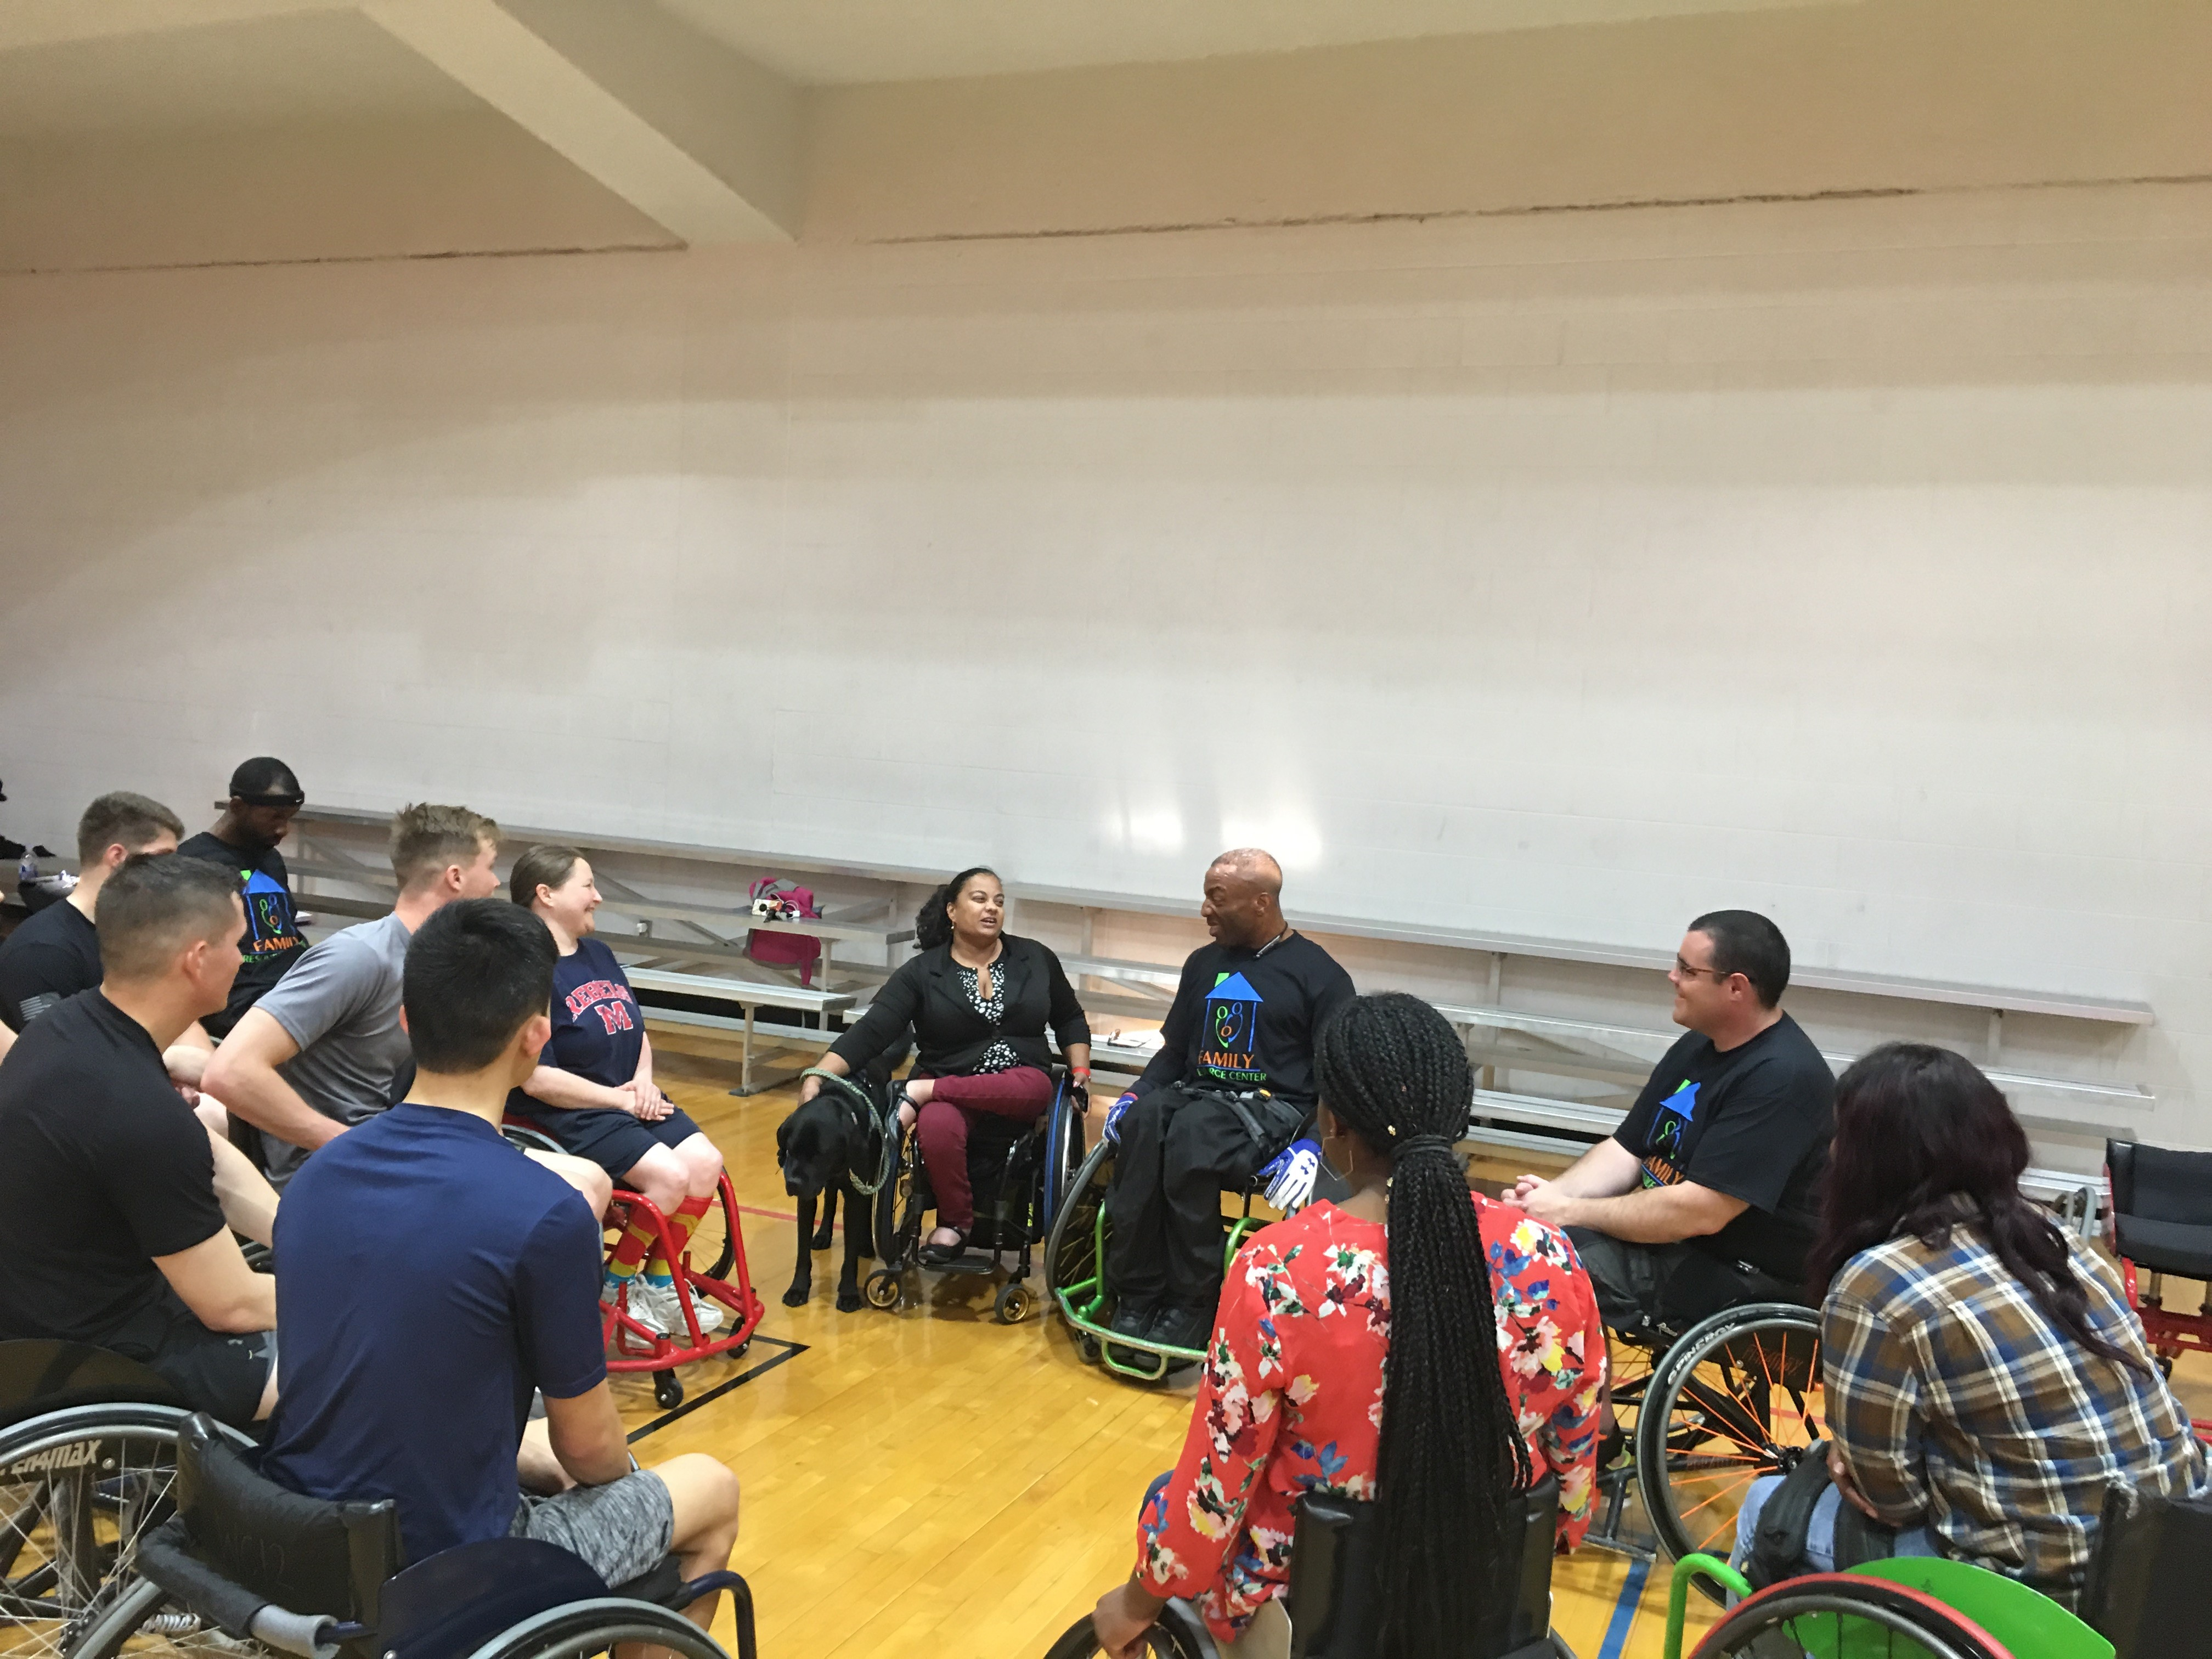 Anjali Forber-Pratt speaks to all the Wheelchair Basketballers during Disability History Month.